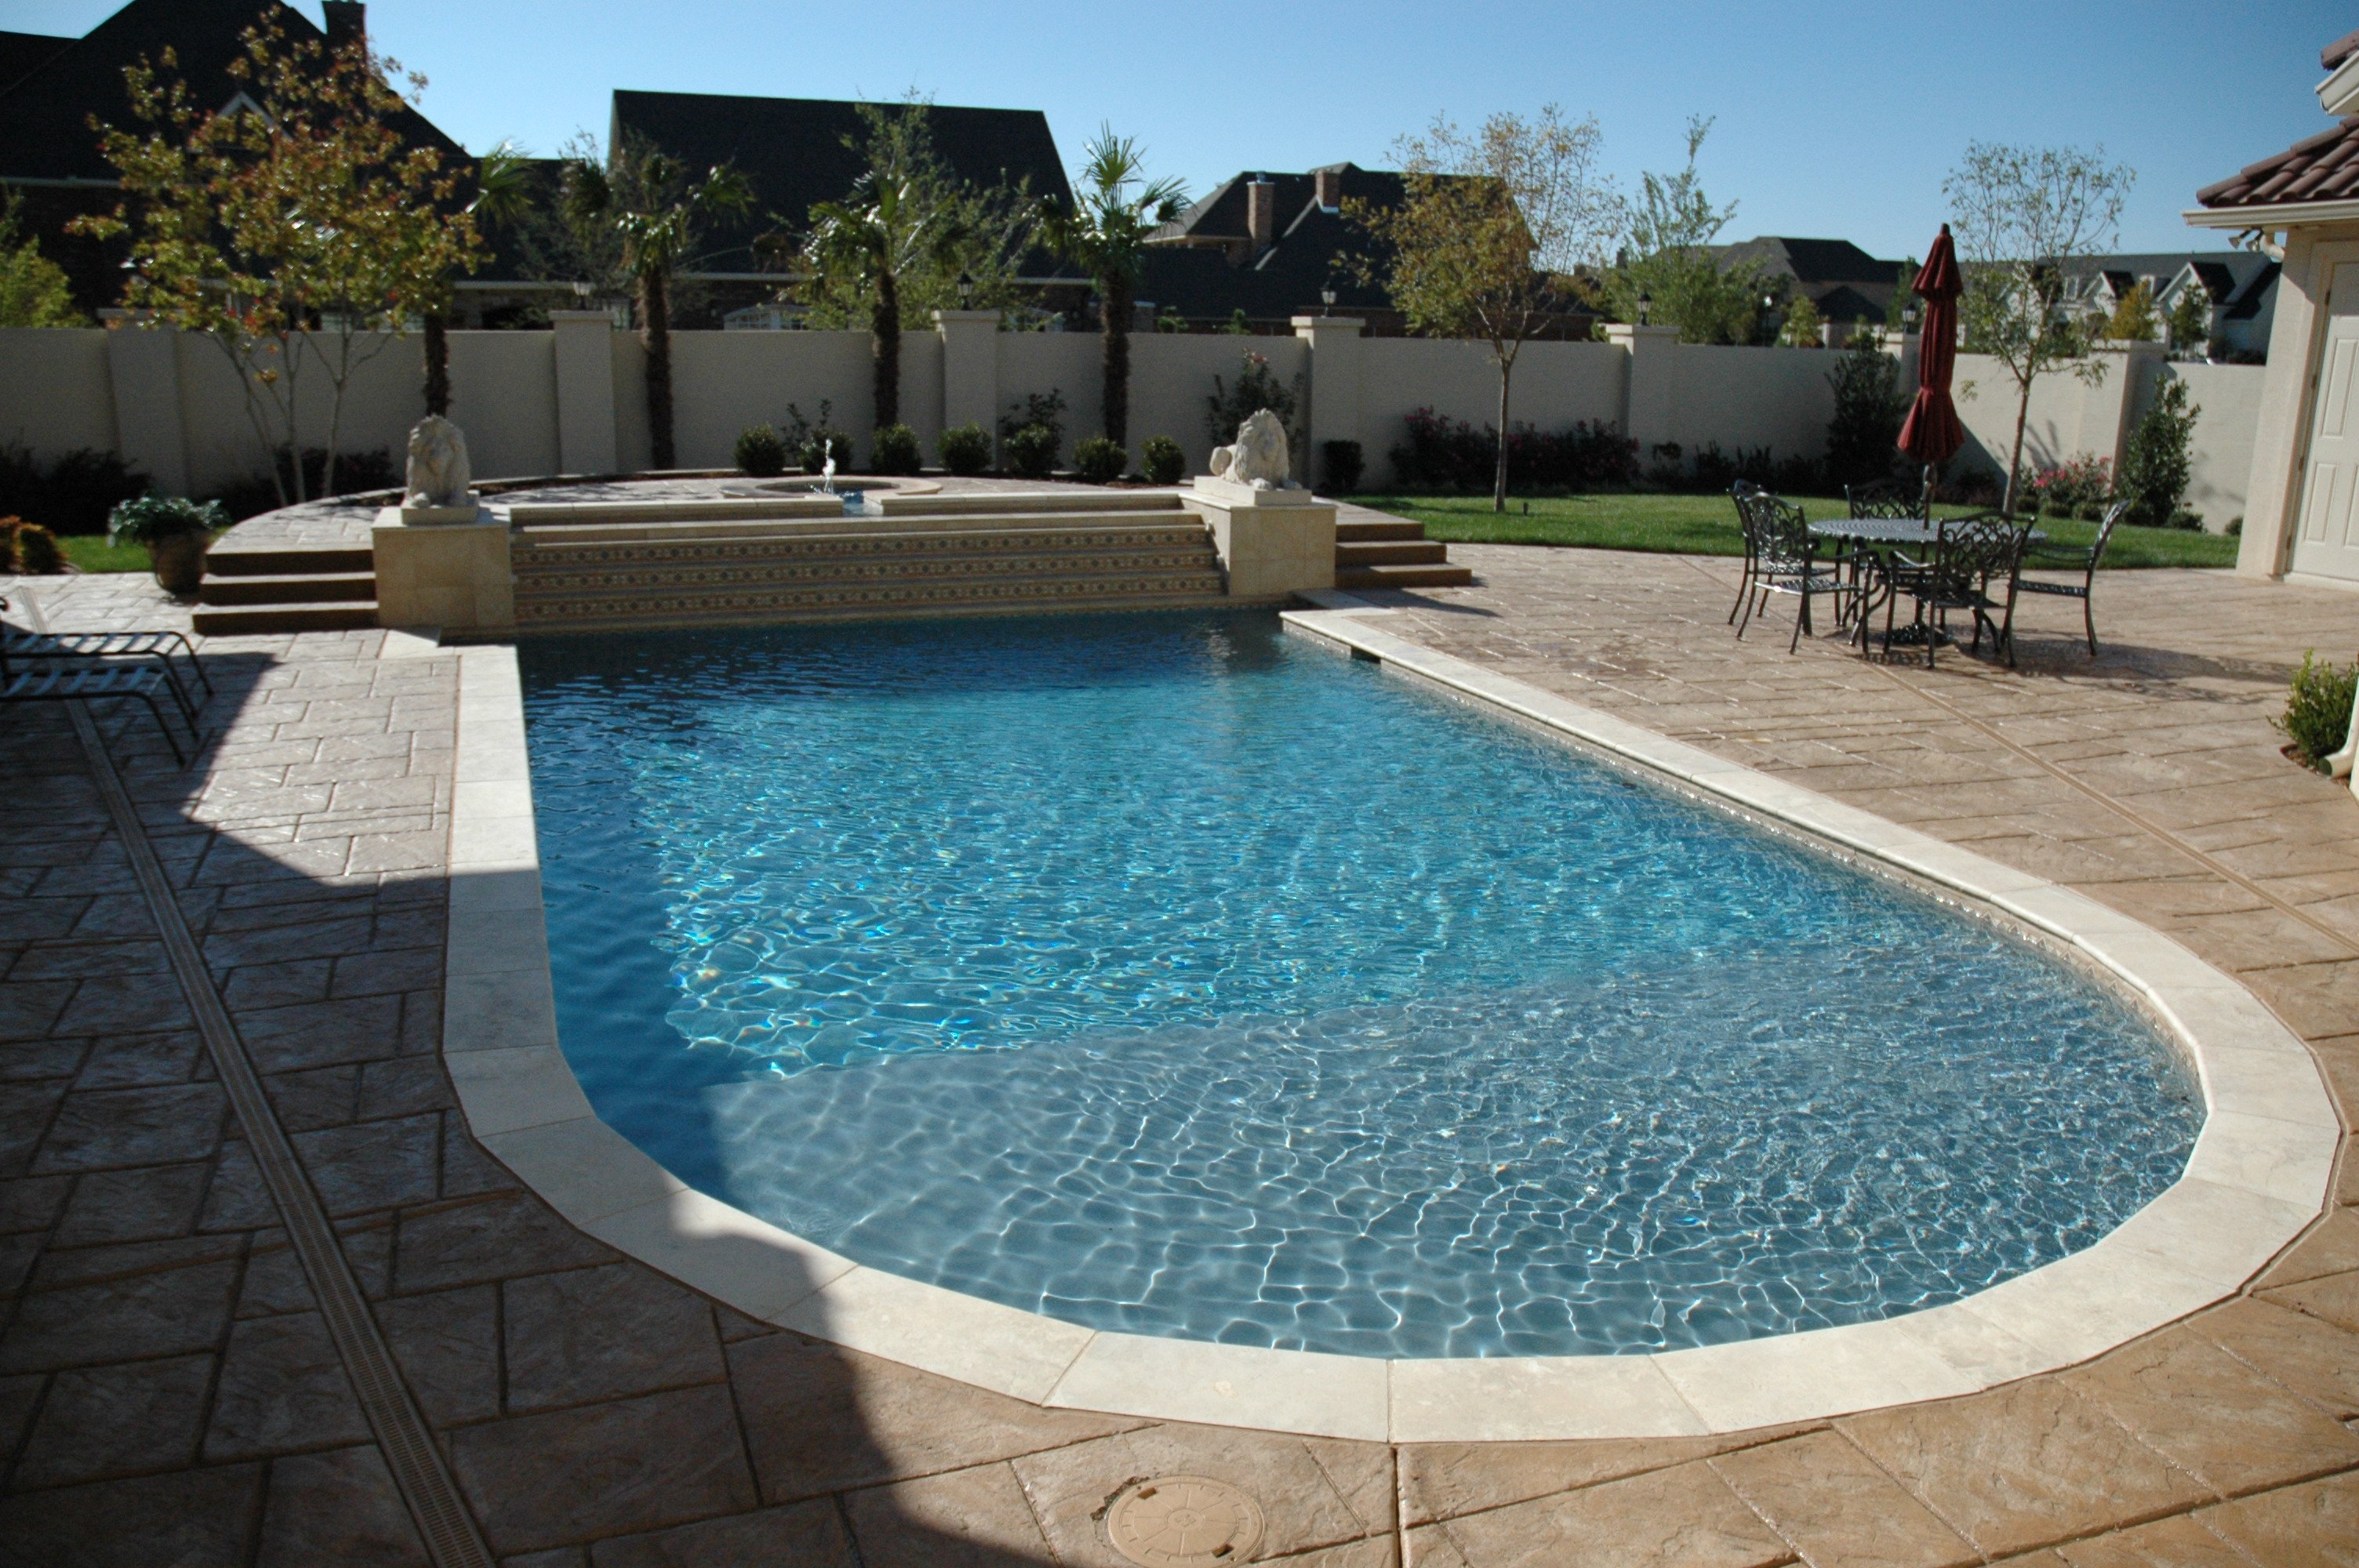 Pool Builder Services In Ground Pool Installation Custom Pool Designs Canyon Pampa